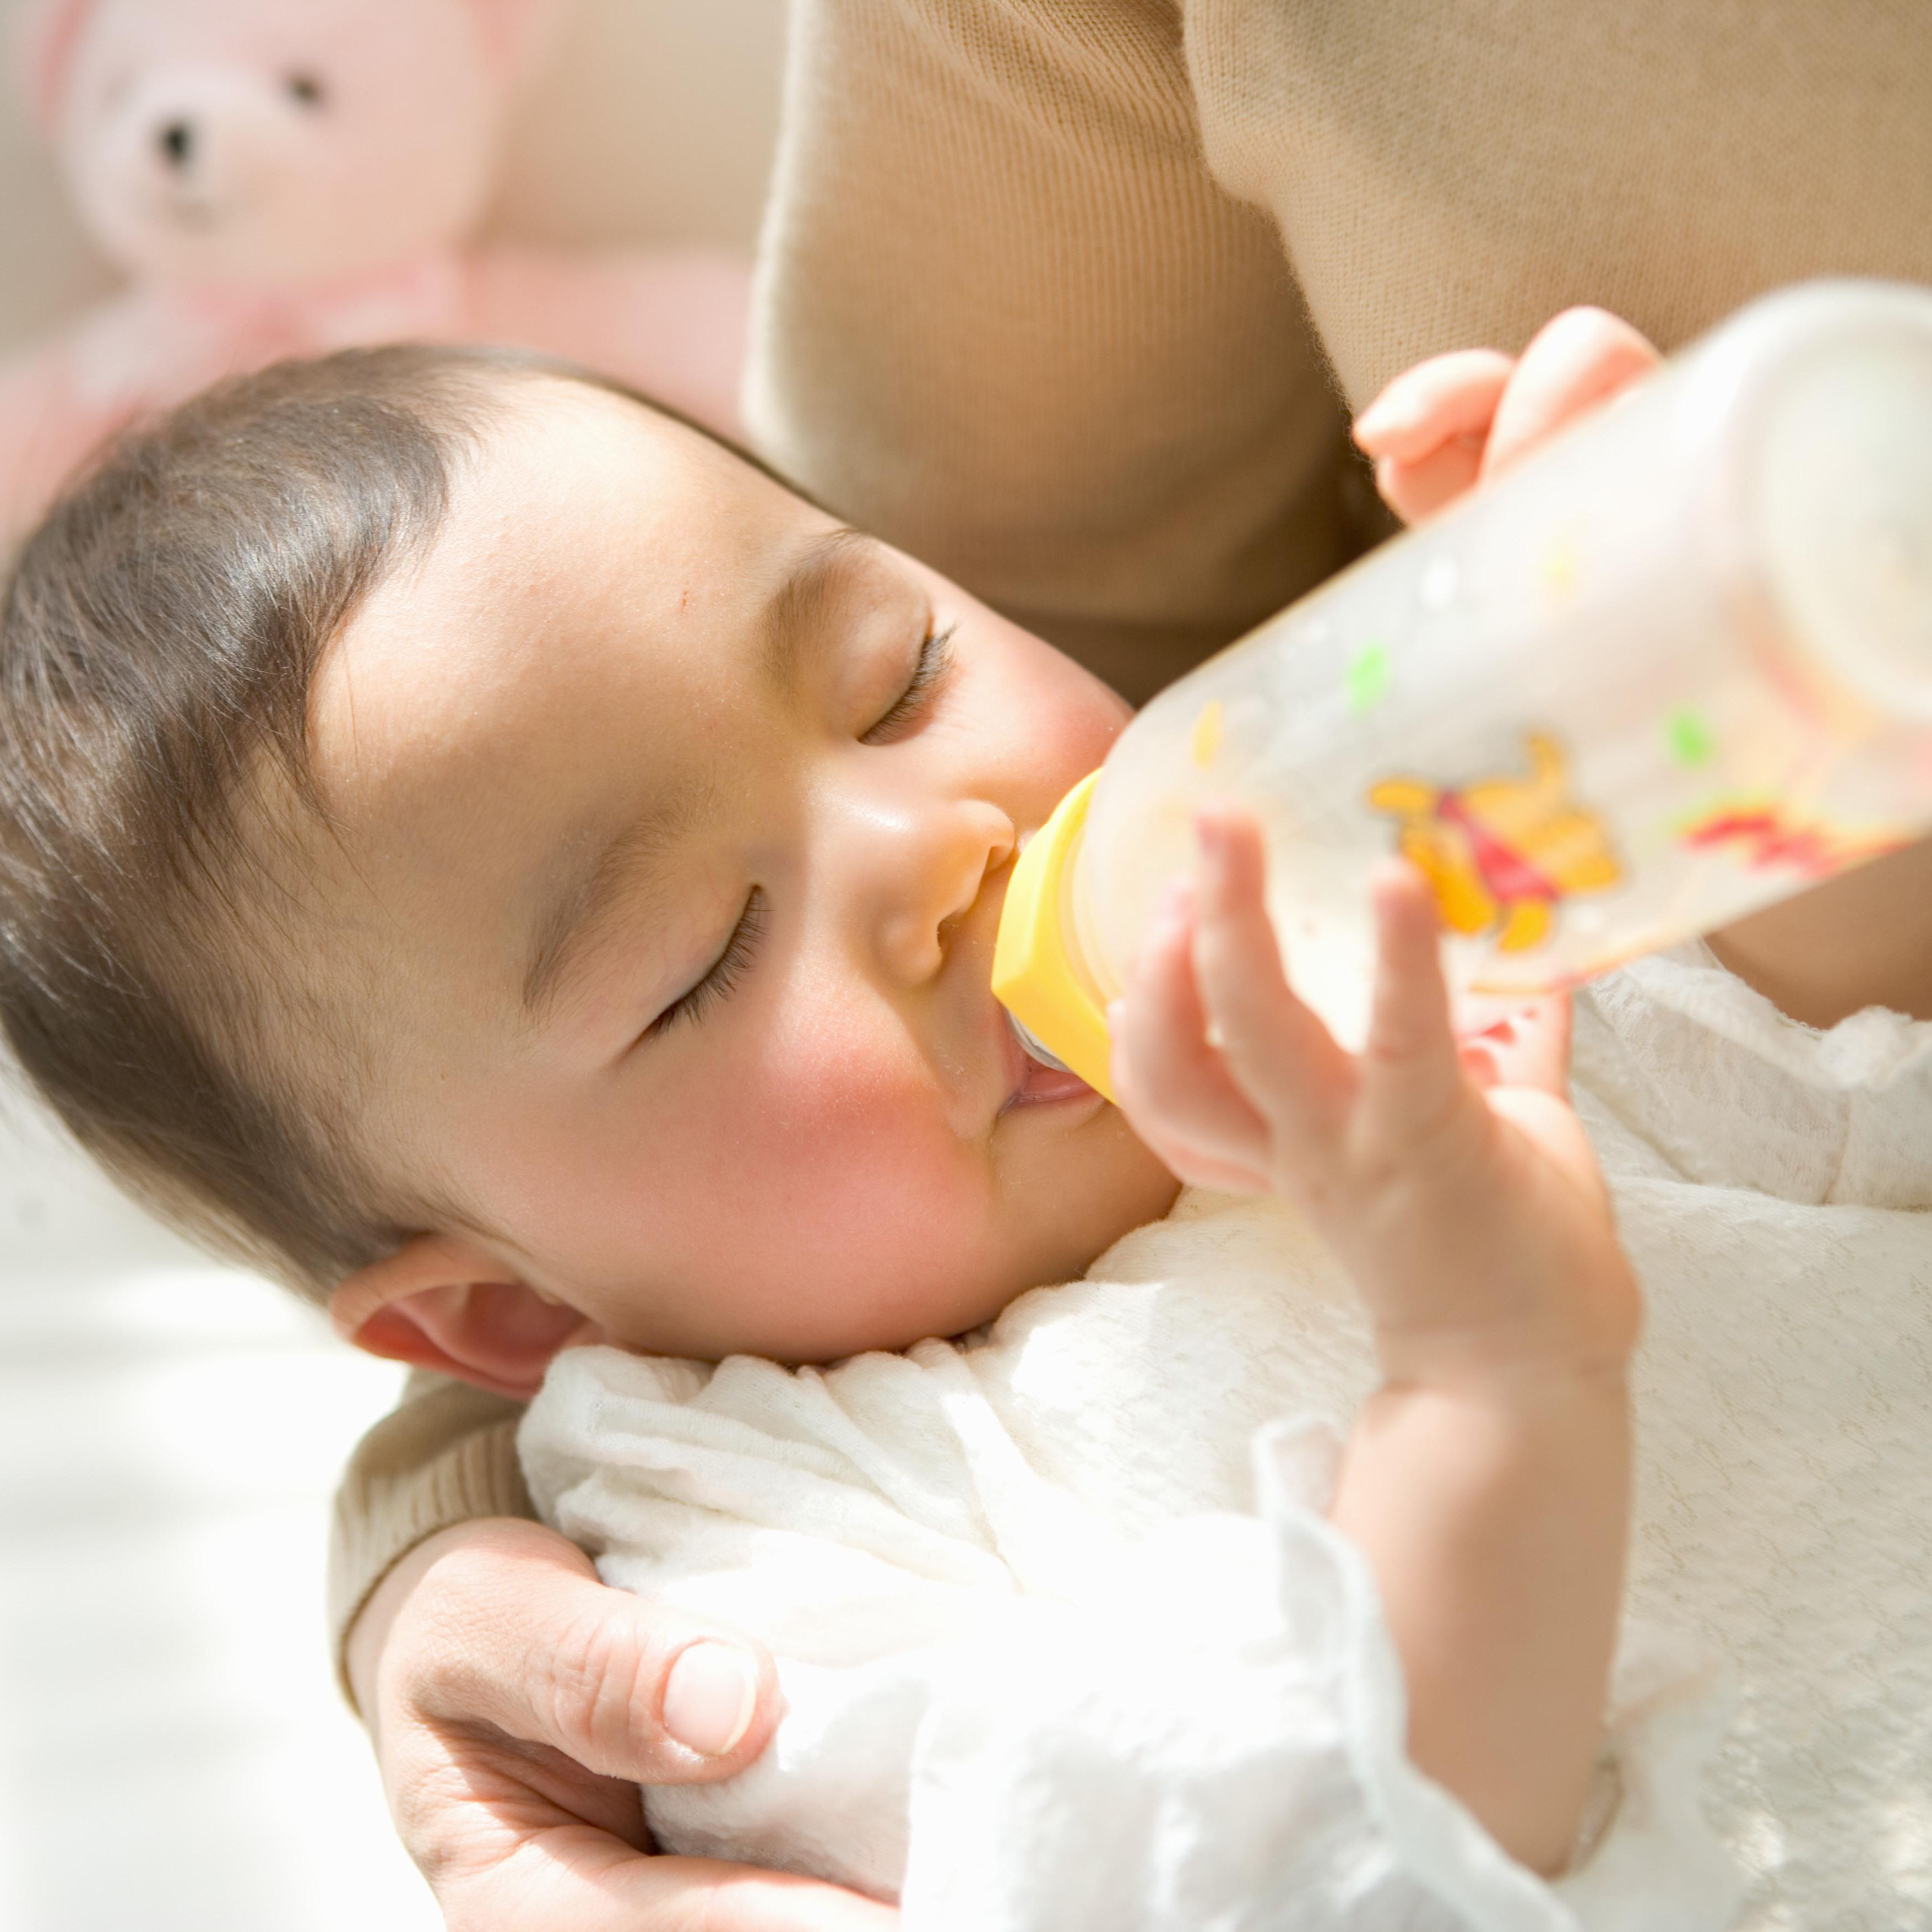 Choosing a Baby Formula Among Similac, Enfamil and More